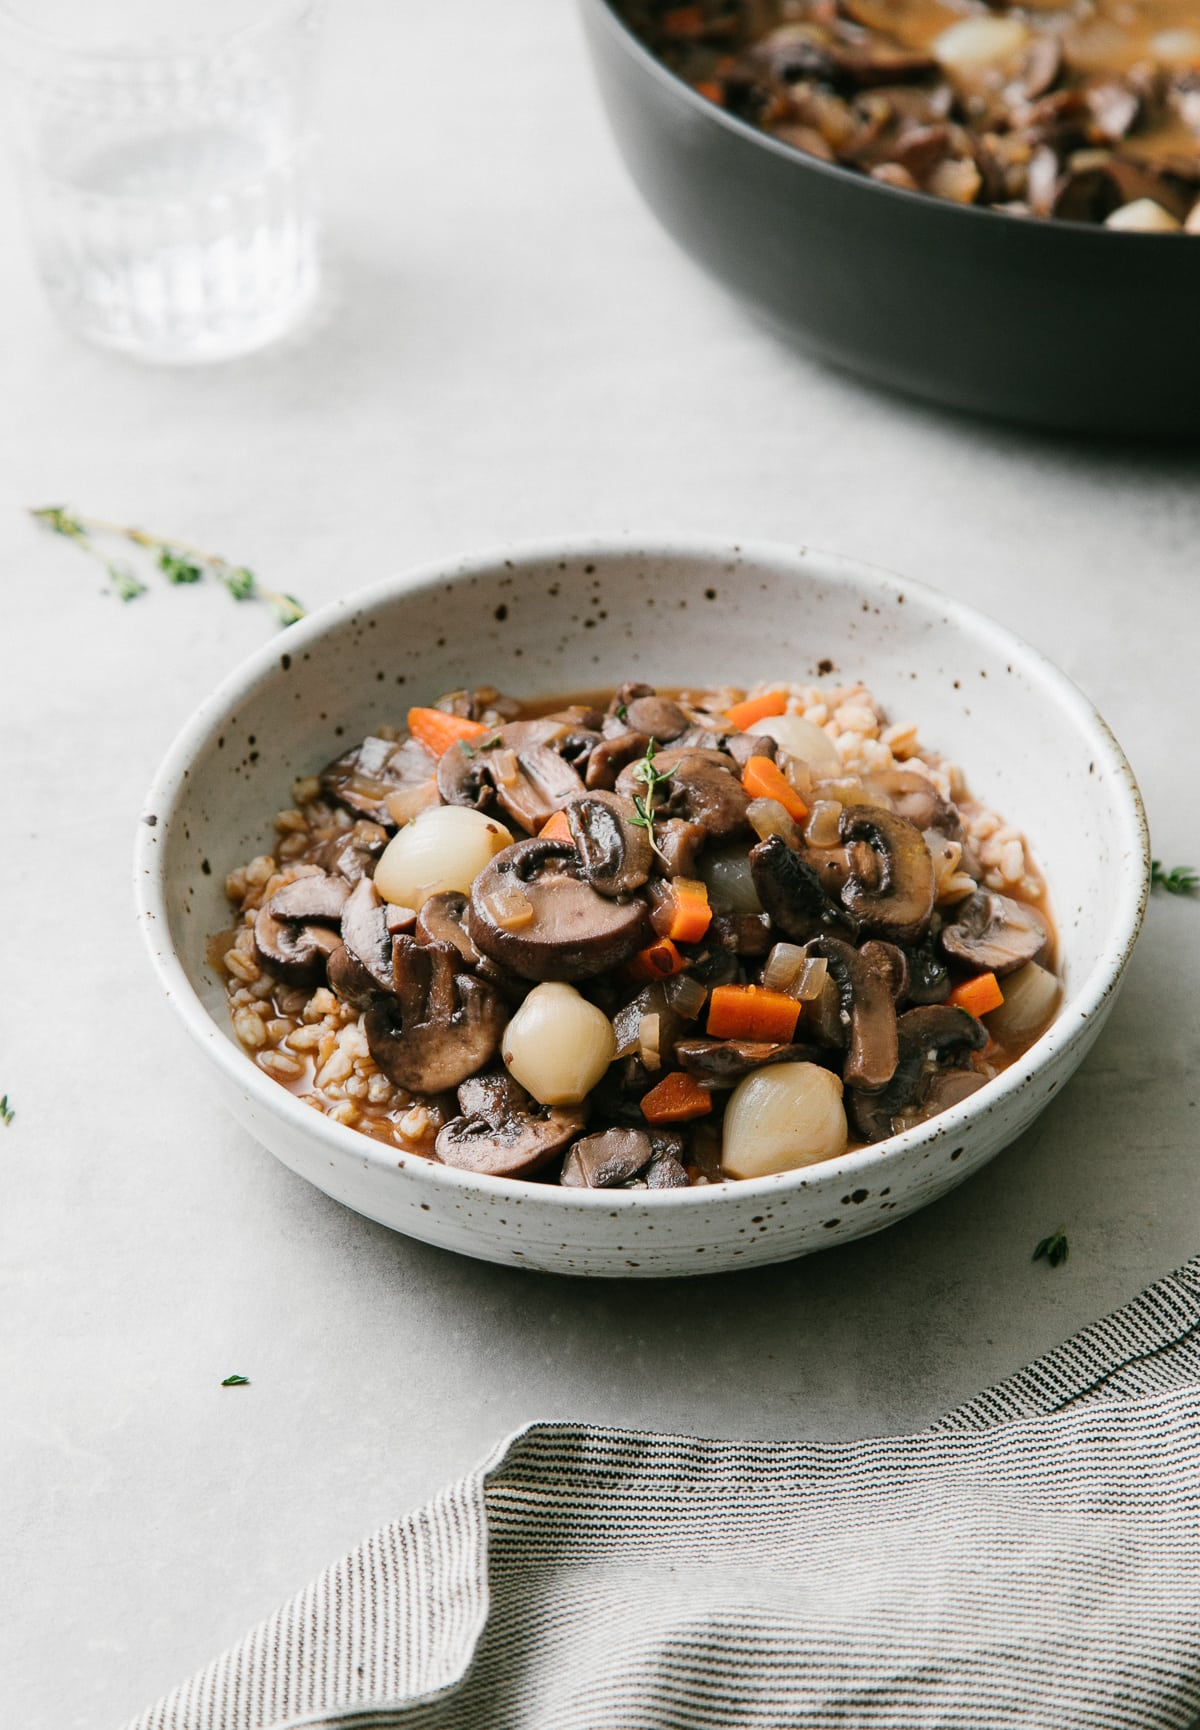 side anlge view of handmade bowl with a serving of mushroom bourguignon and farro with items surrounding.